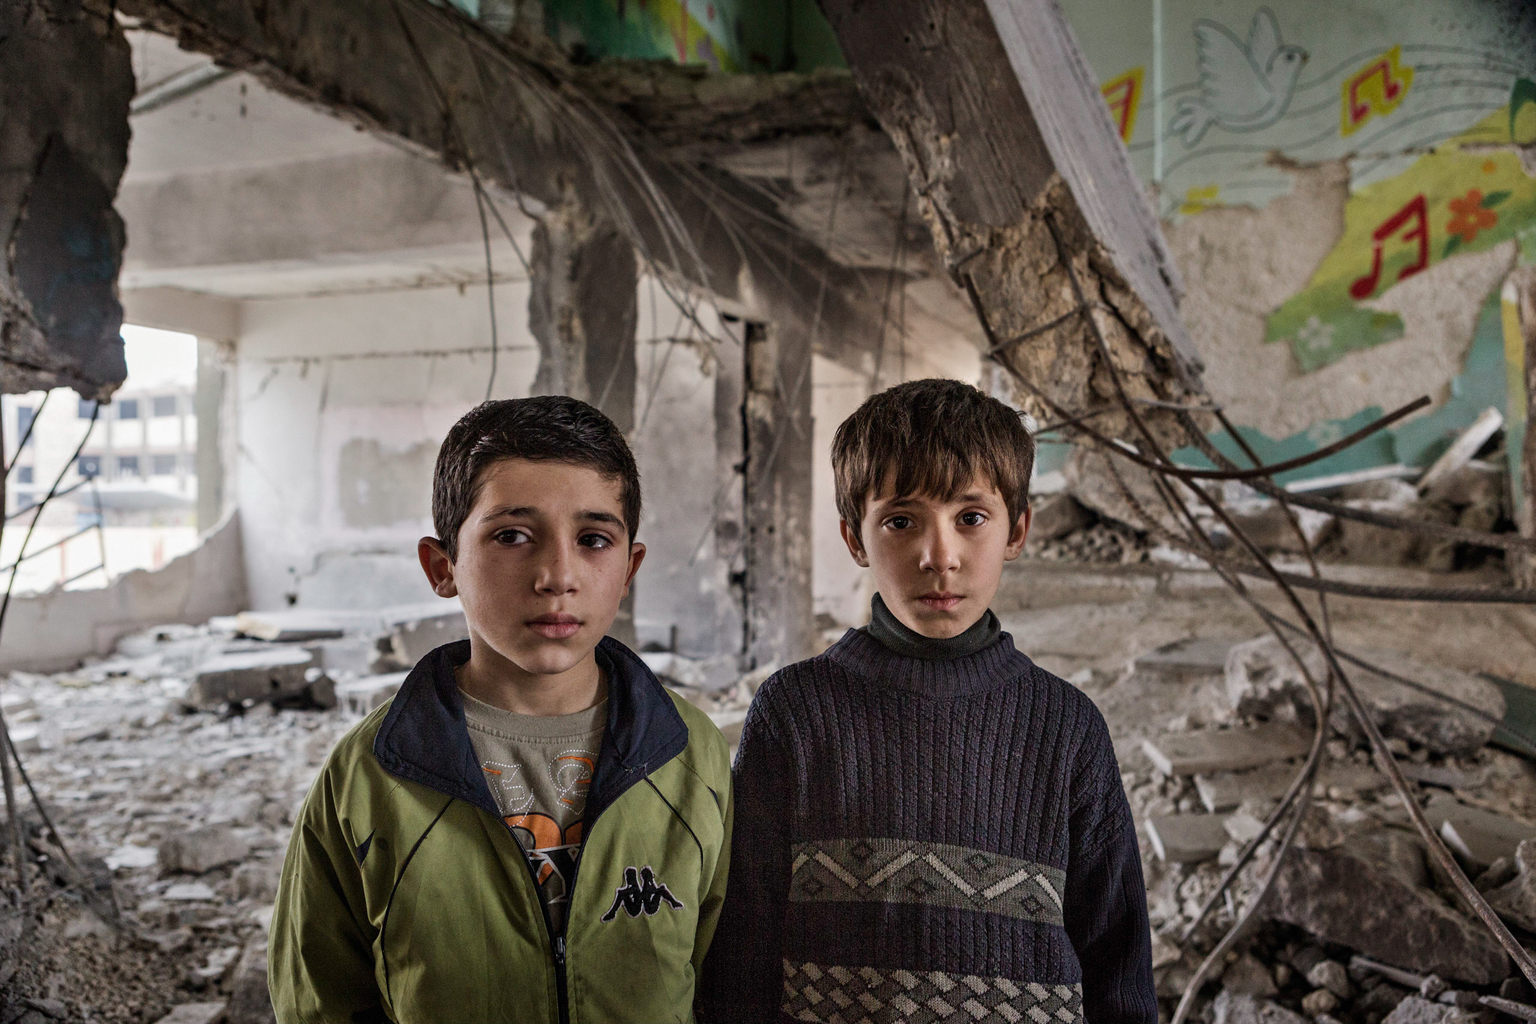 Febru ary 7, 2013, Tarik al Bab, Aleppo. Two boys stand for a portrait in a damaged school building.